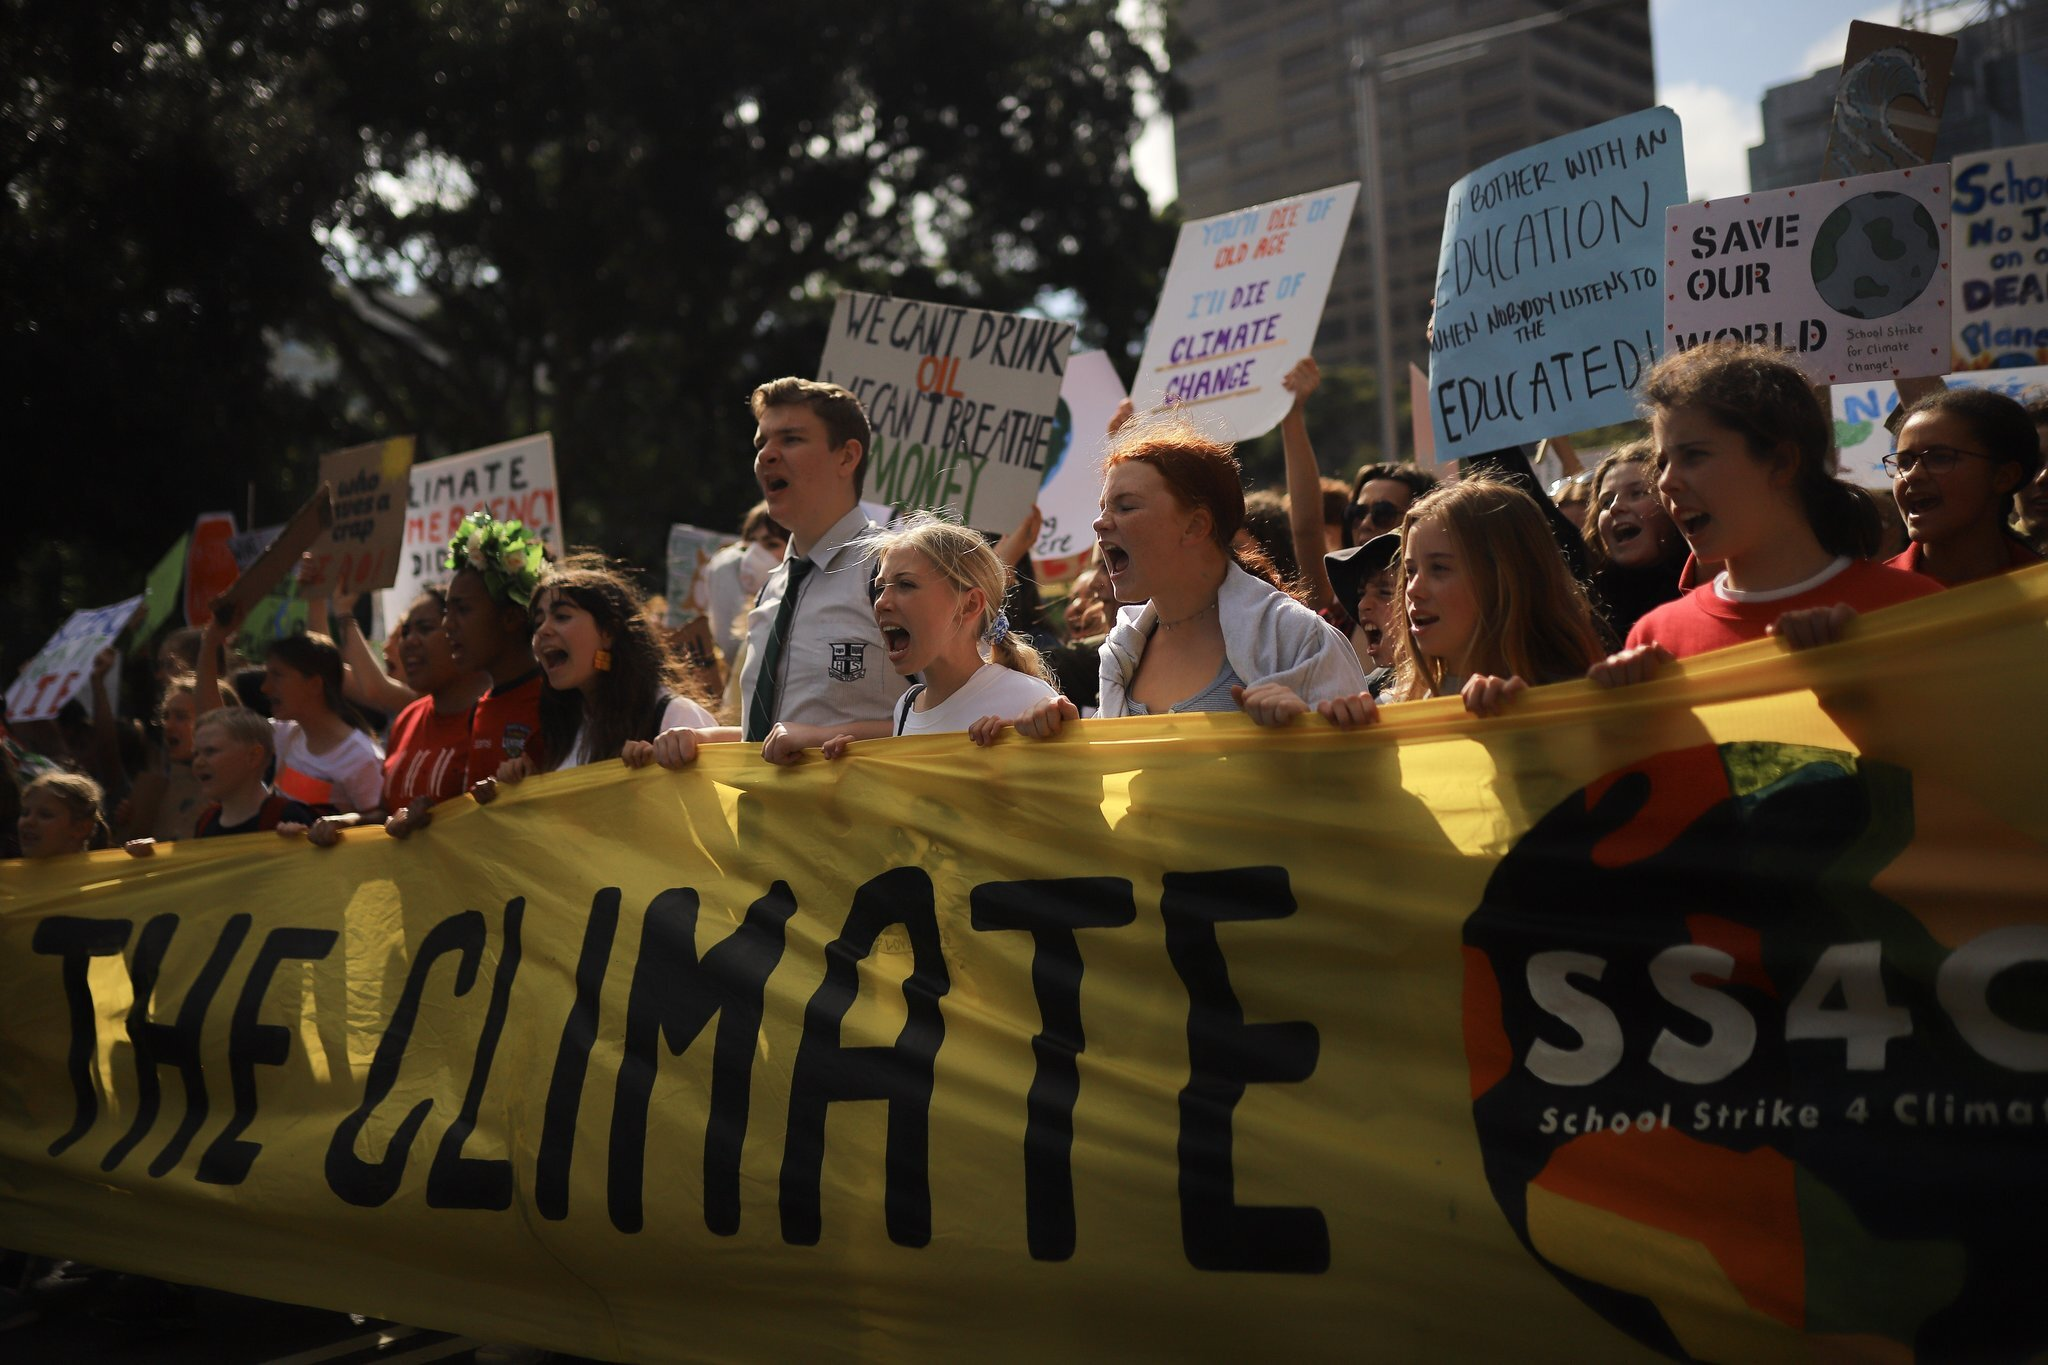 Protesters at the climate demonstration in Sydney. Credit Steven Saphore/EPA, via Shutterstock